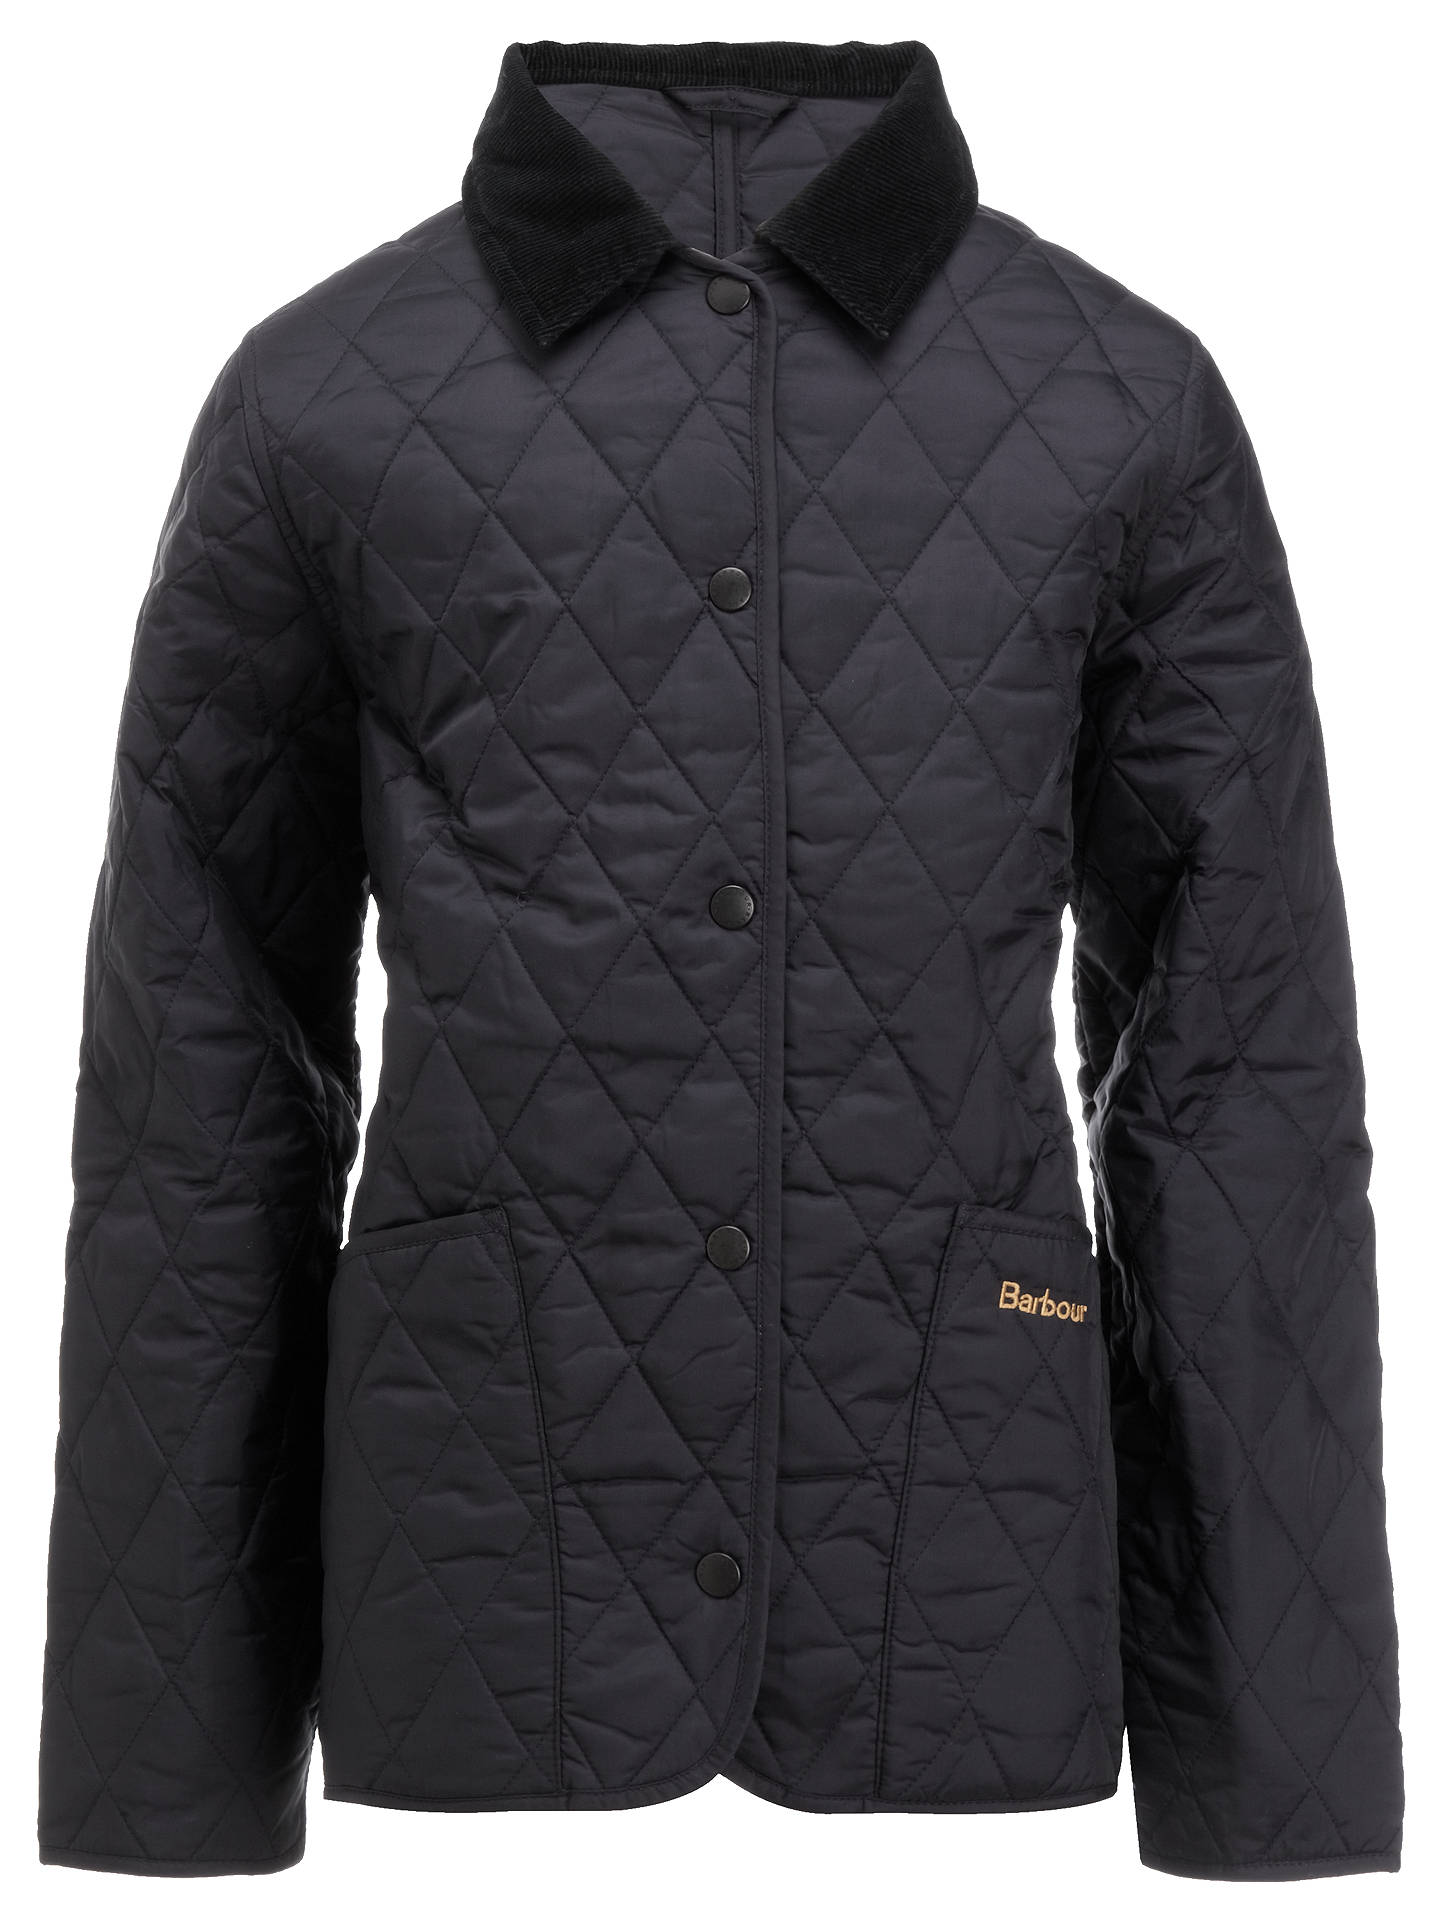 Barbour Girls Liddesdale Quilted Jacket At John Lewis Partners